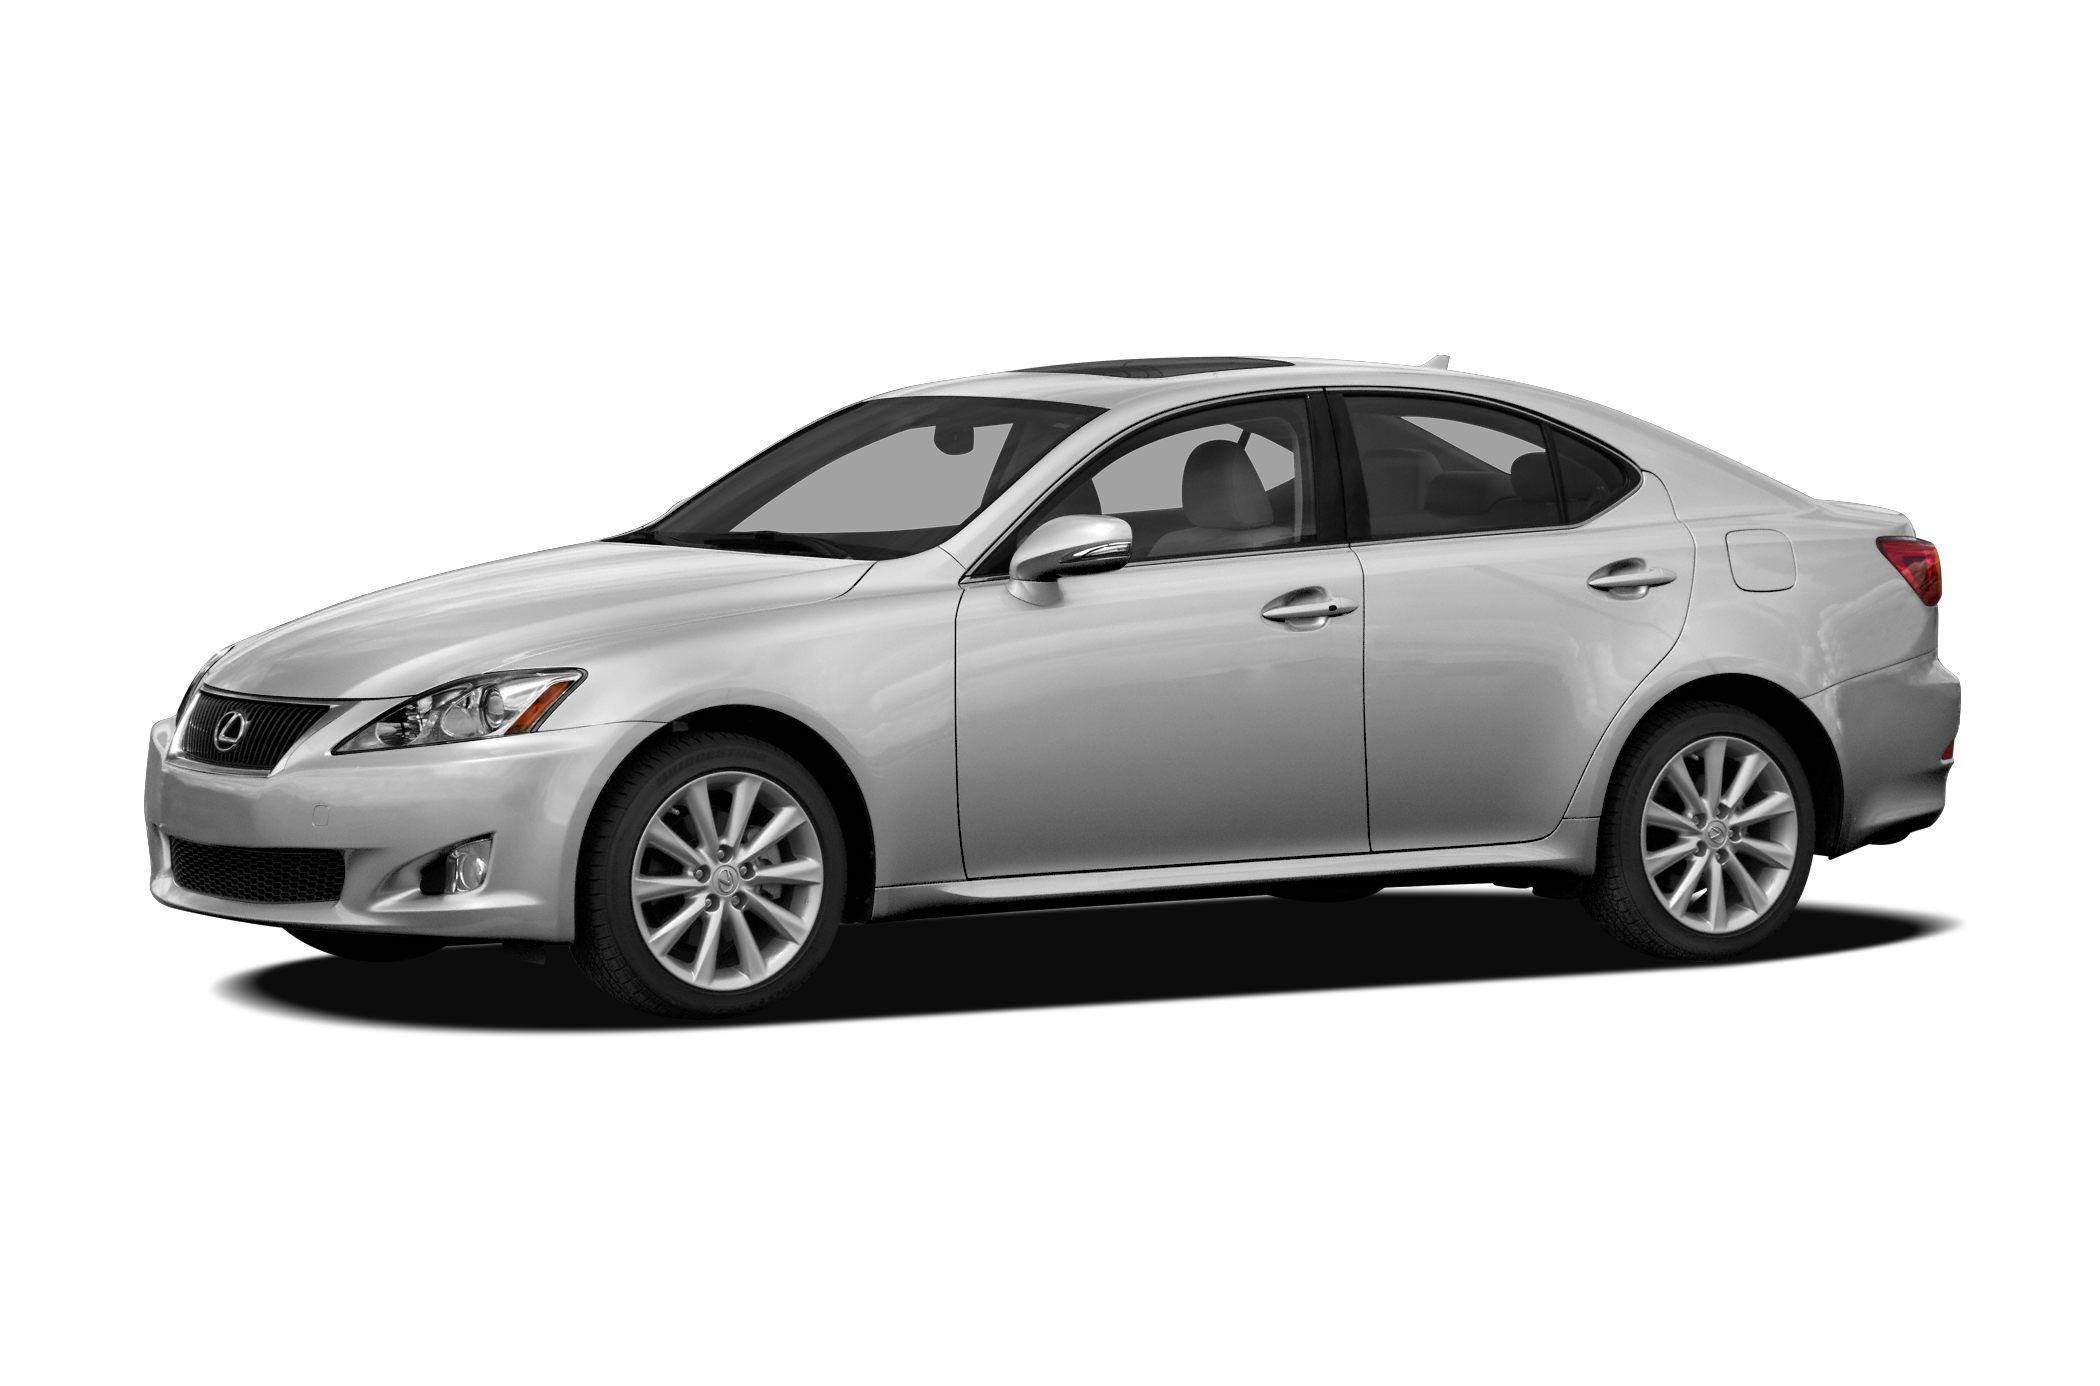 2011 Lexus IS 250 Base Sedan for sale in Pensacola for $24,500 with 56,327 miles.